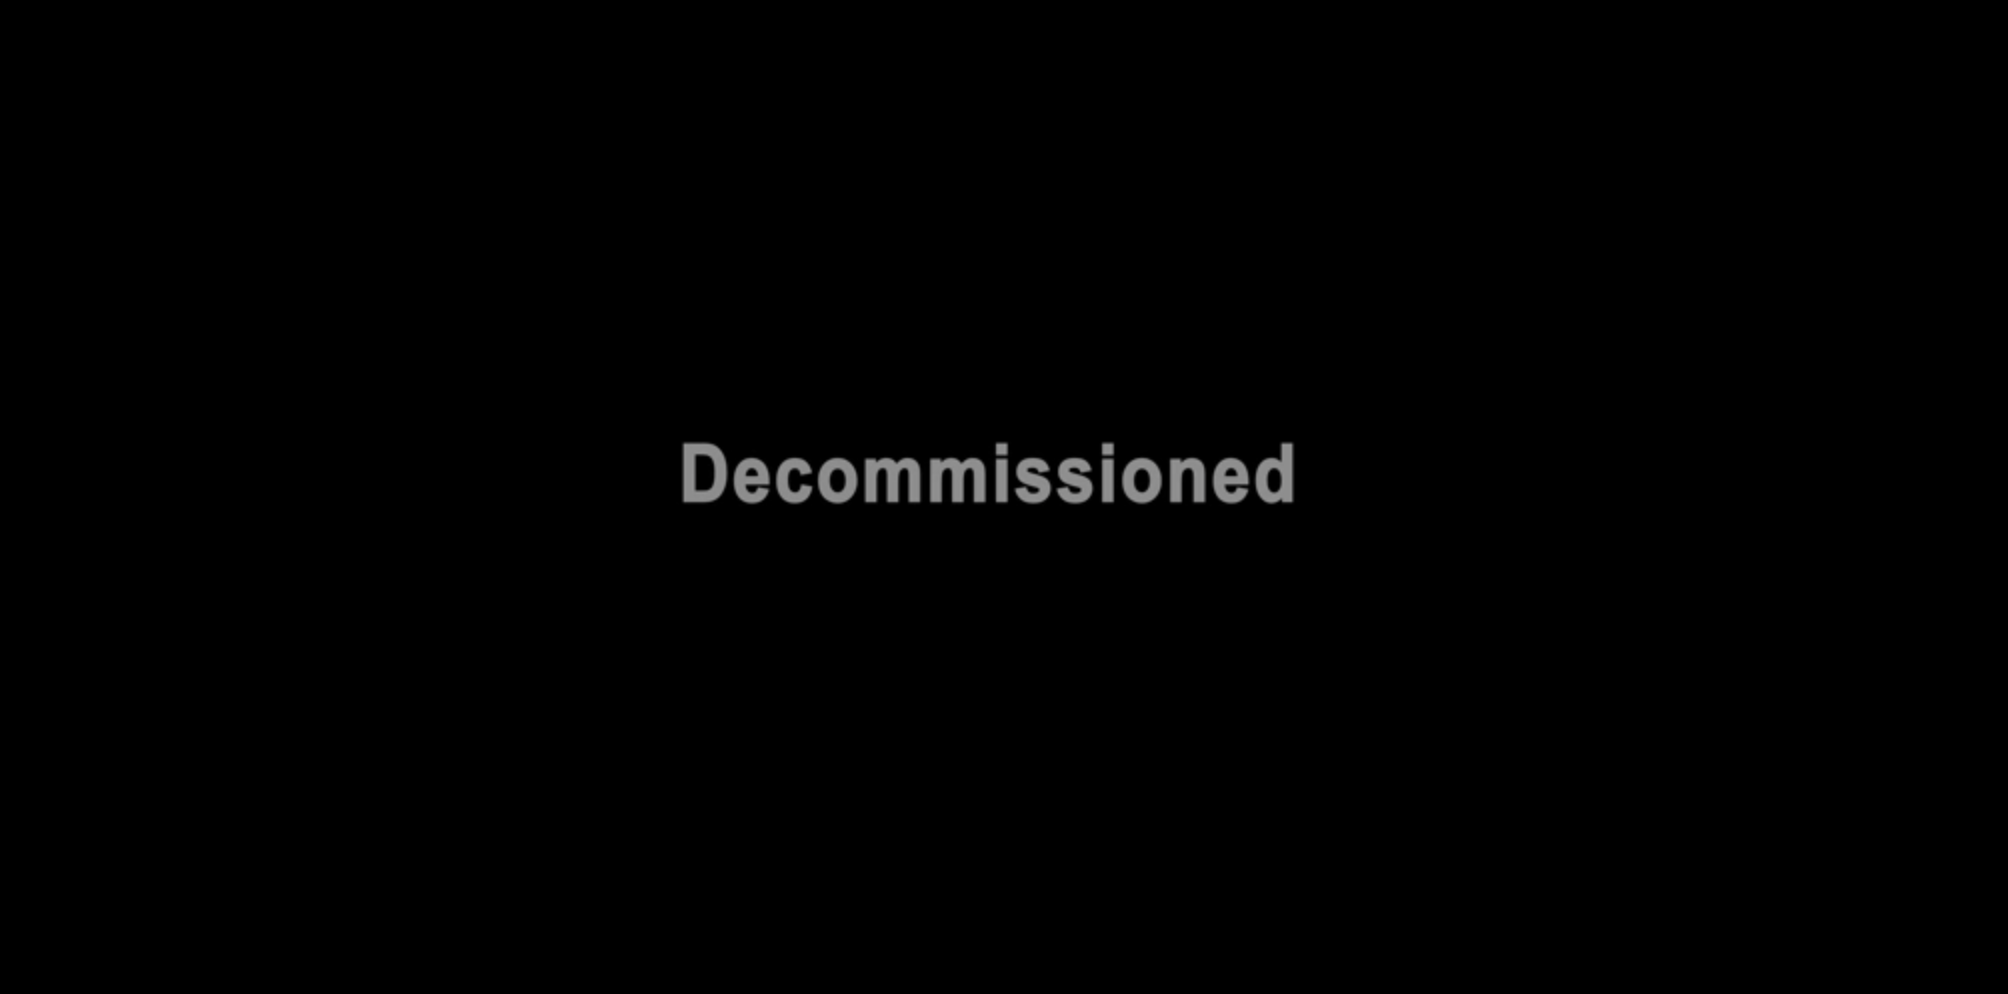 Decommissioned title card for The Bad Batch